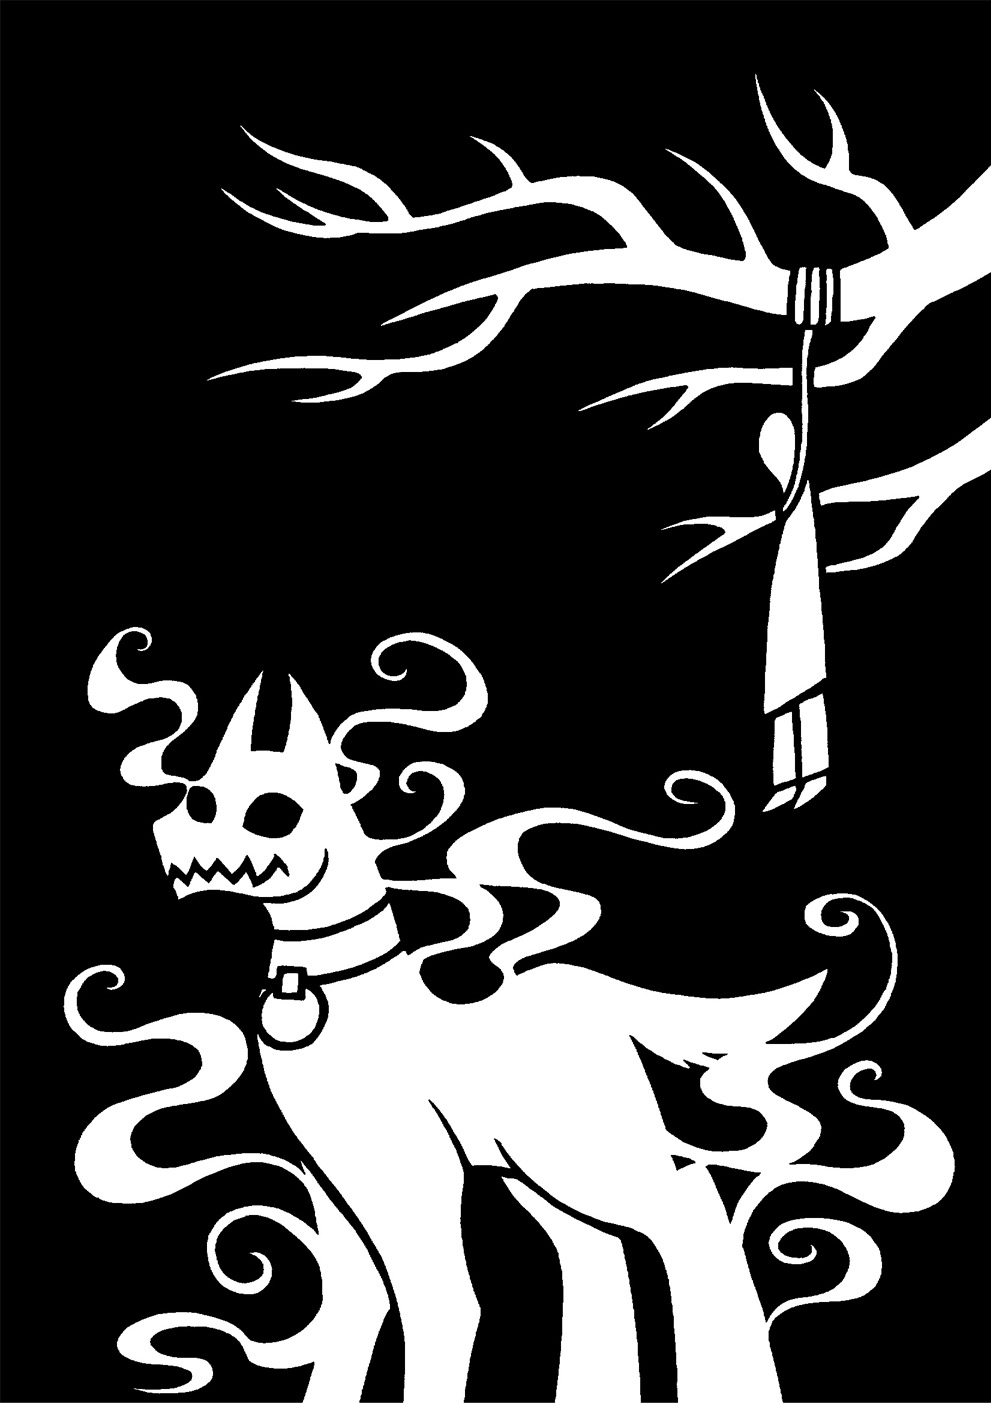 SCP-1111 - The White Dog